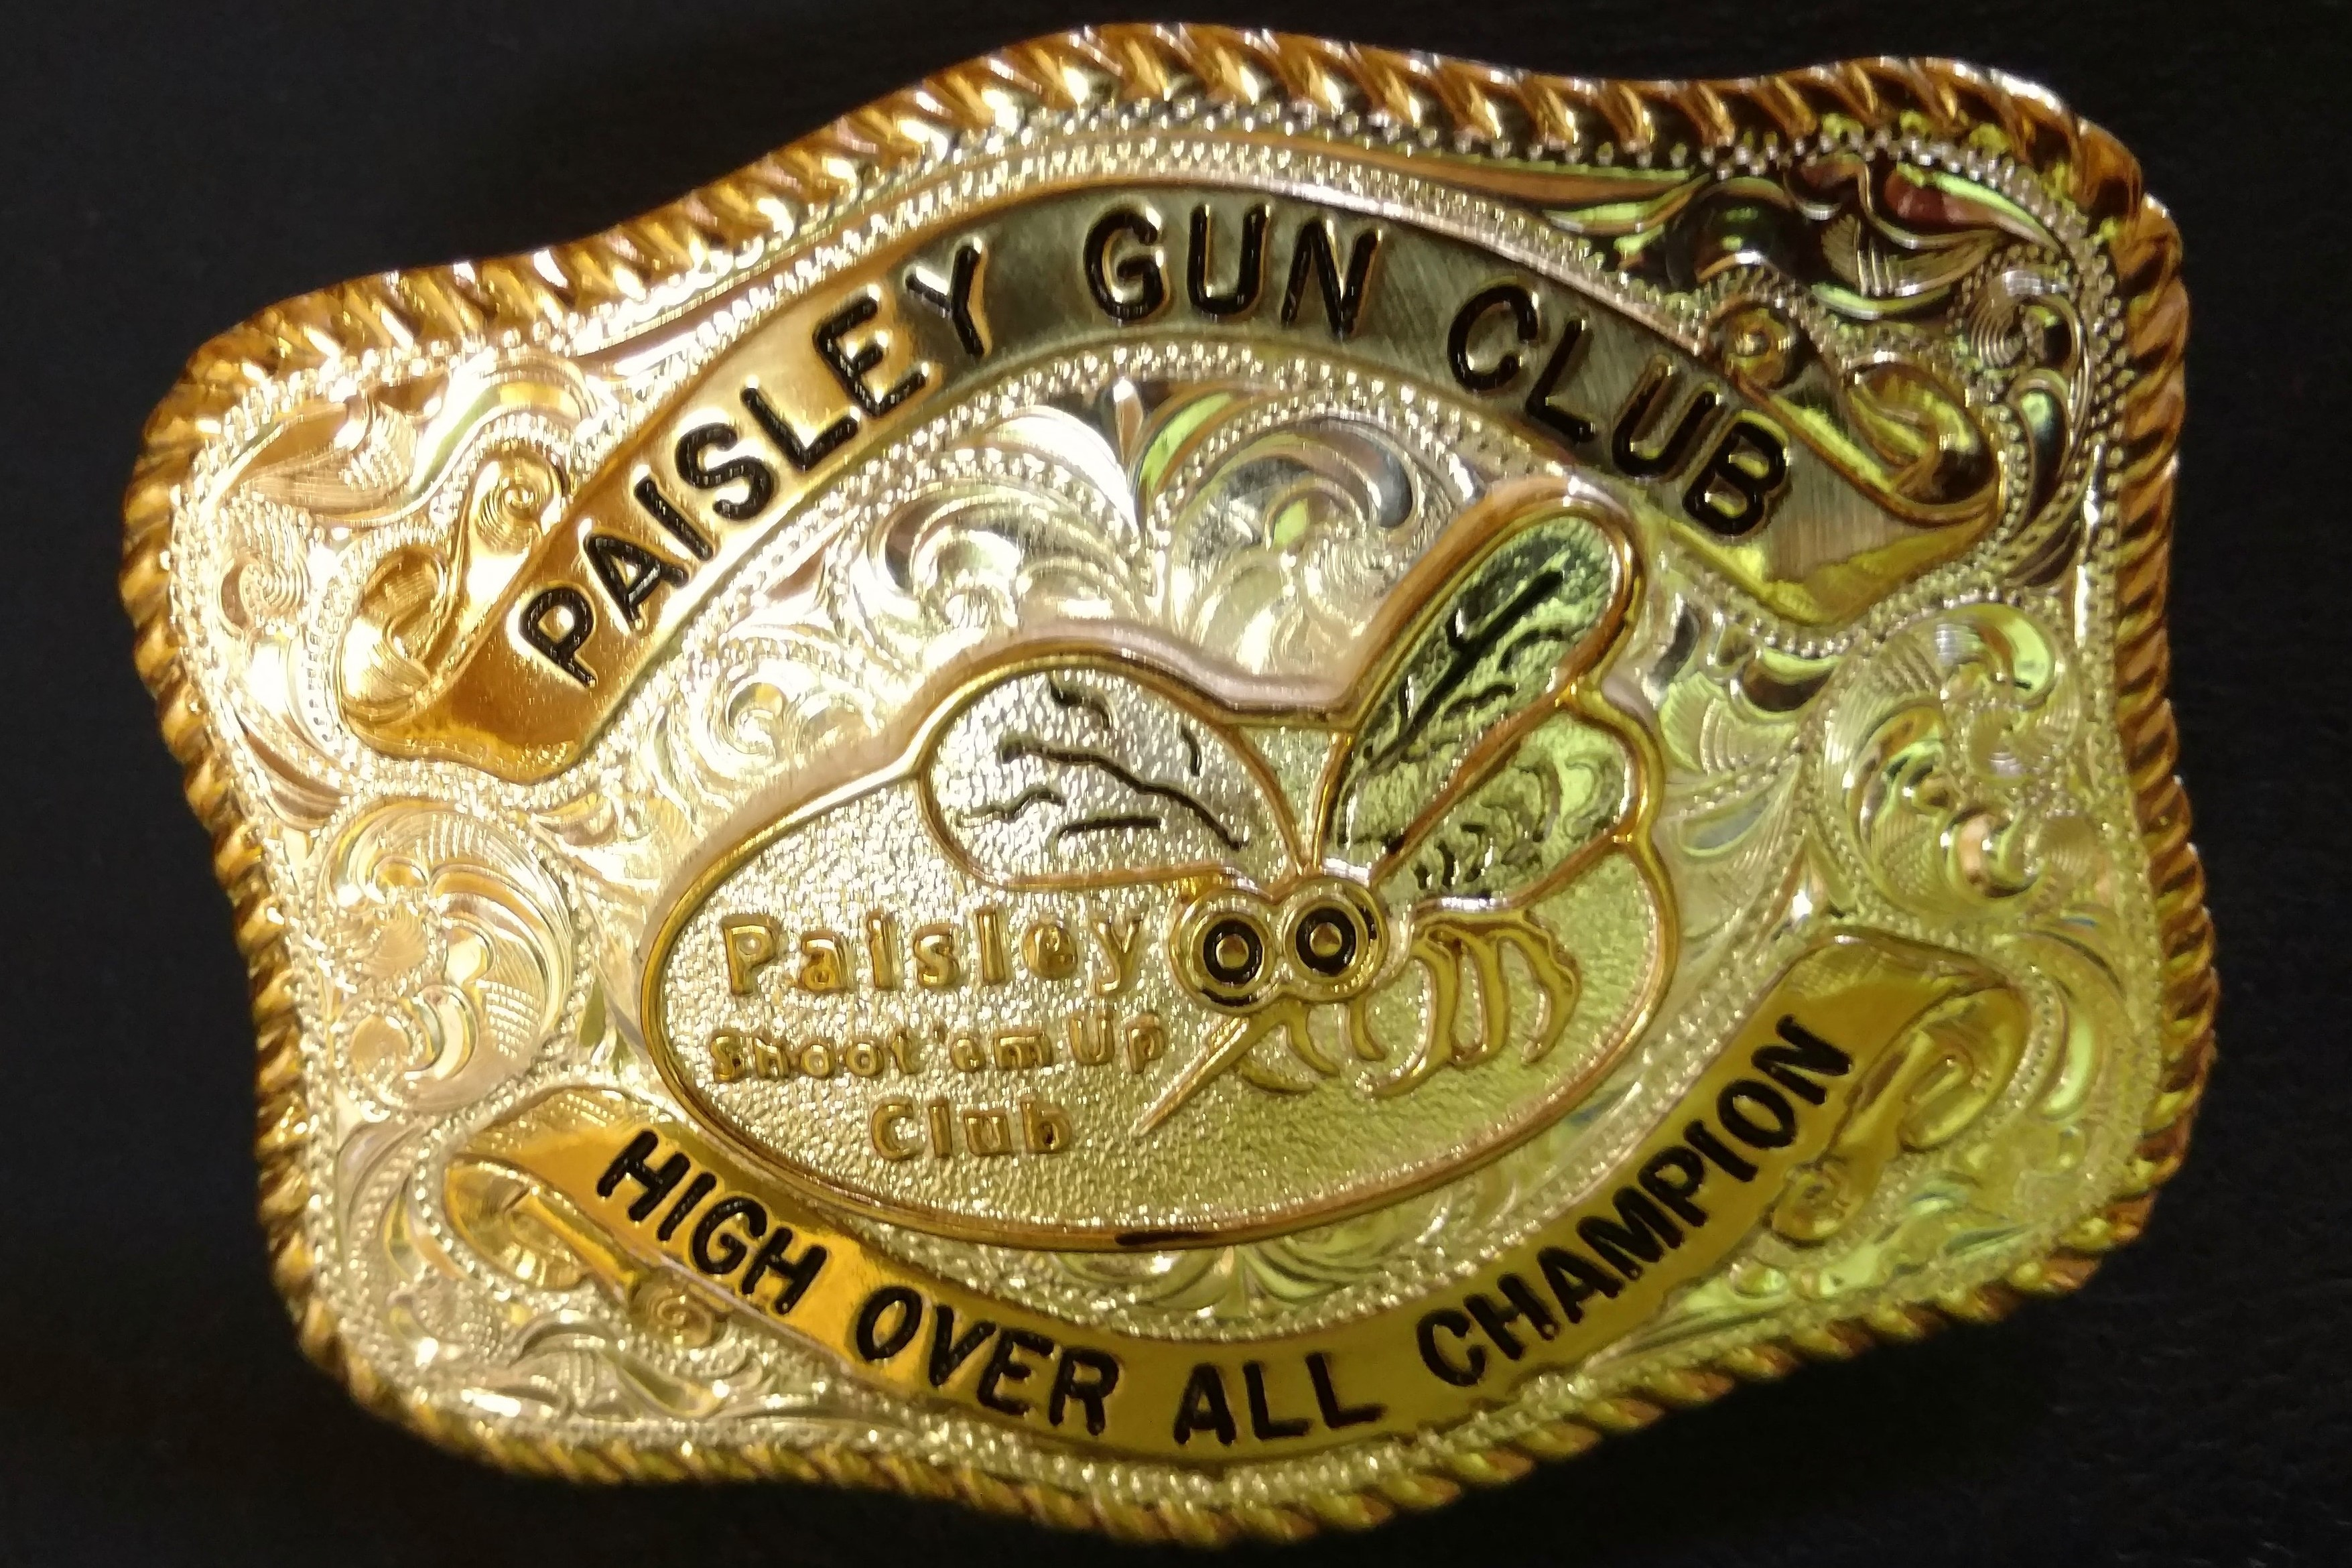 Who will win this famous Paisley Mosquito Shoot buckle?